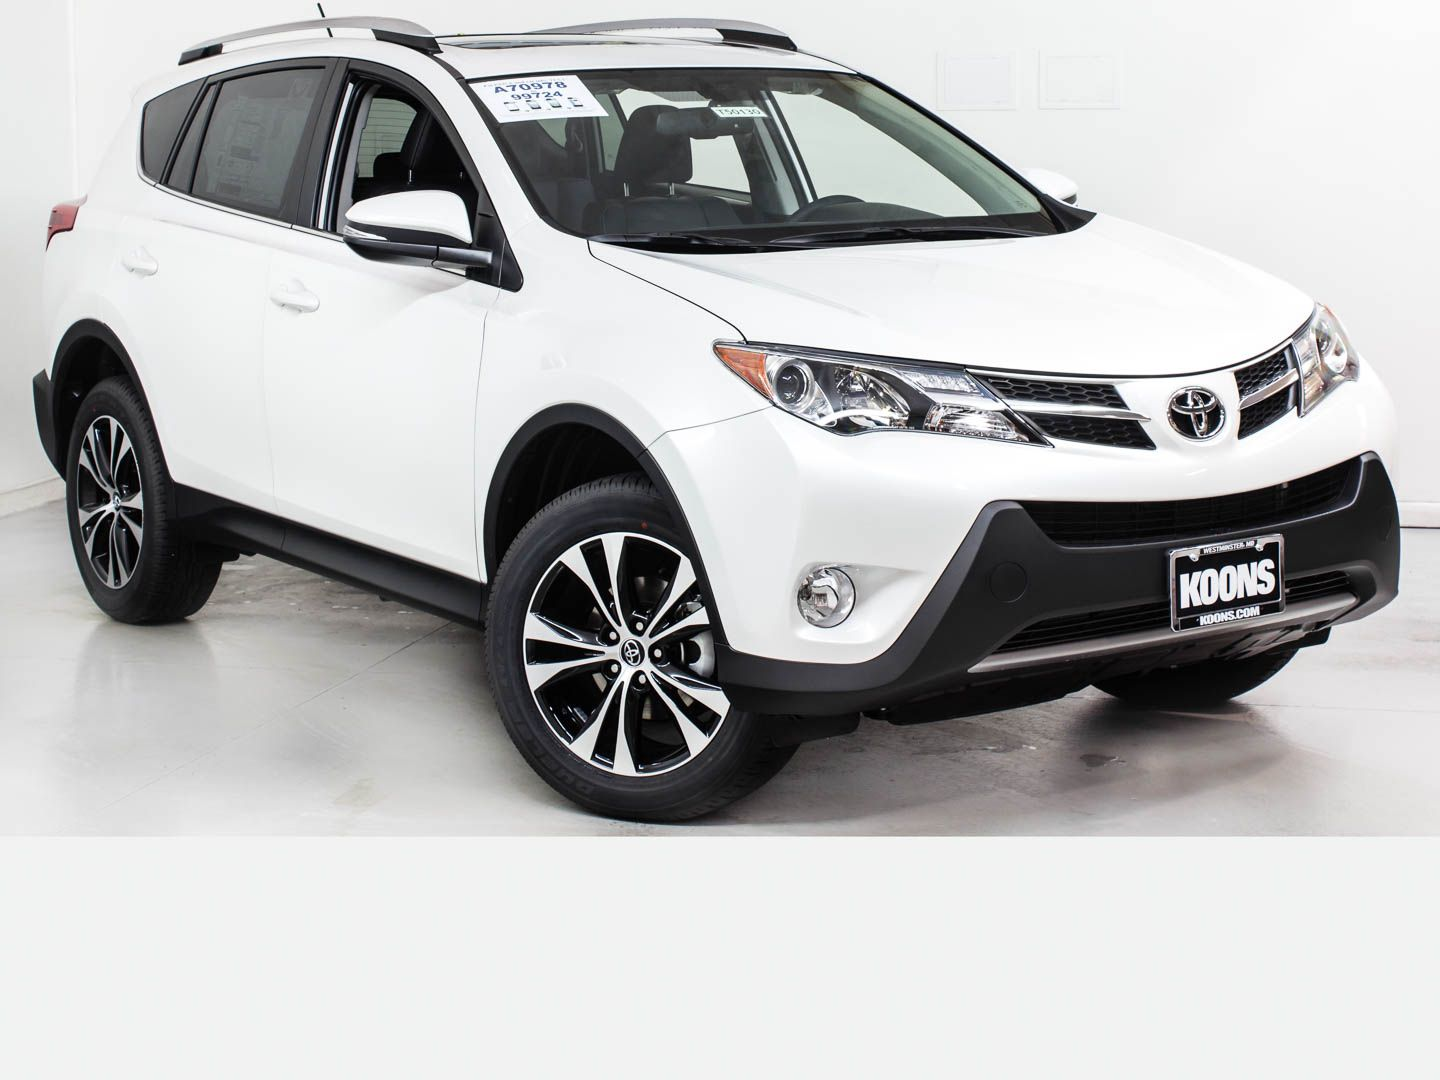 new toyota rav4 2015 high quality ultra wallpapers. Black Bedroom Furniture Sets. Home Design Ideas